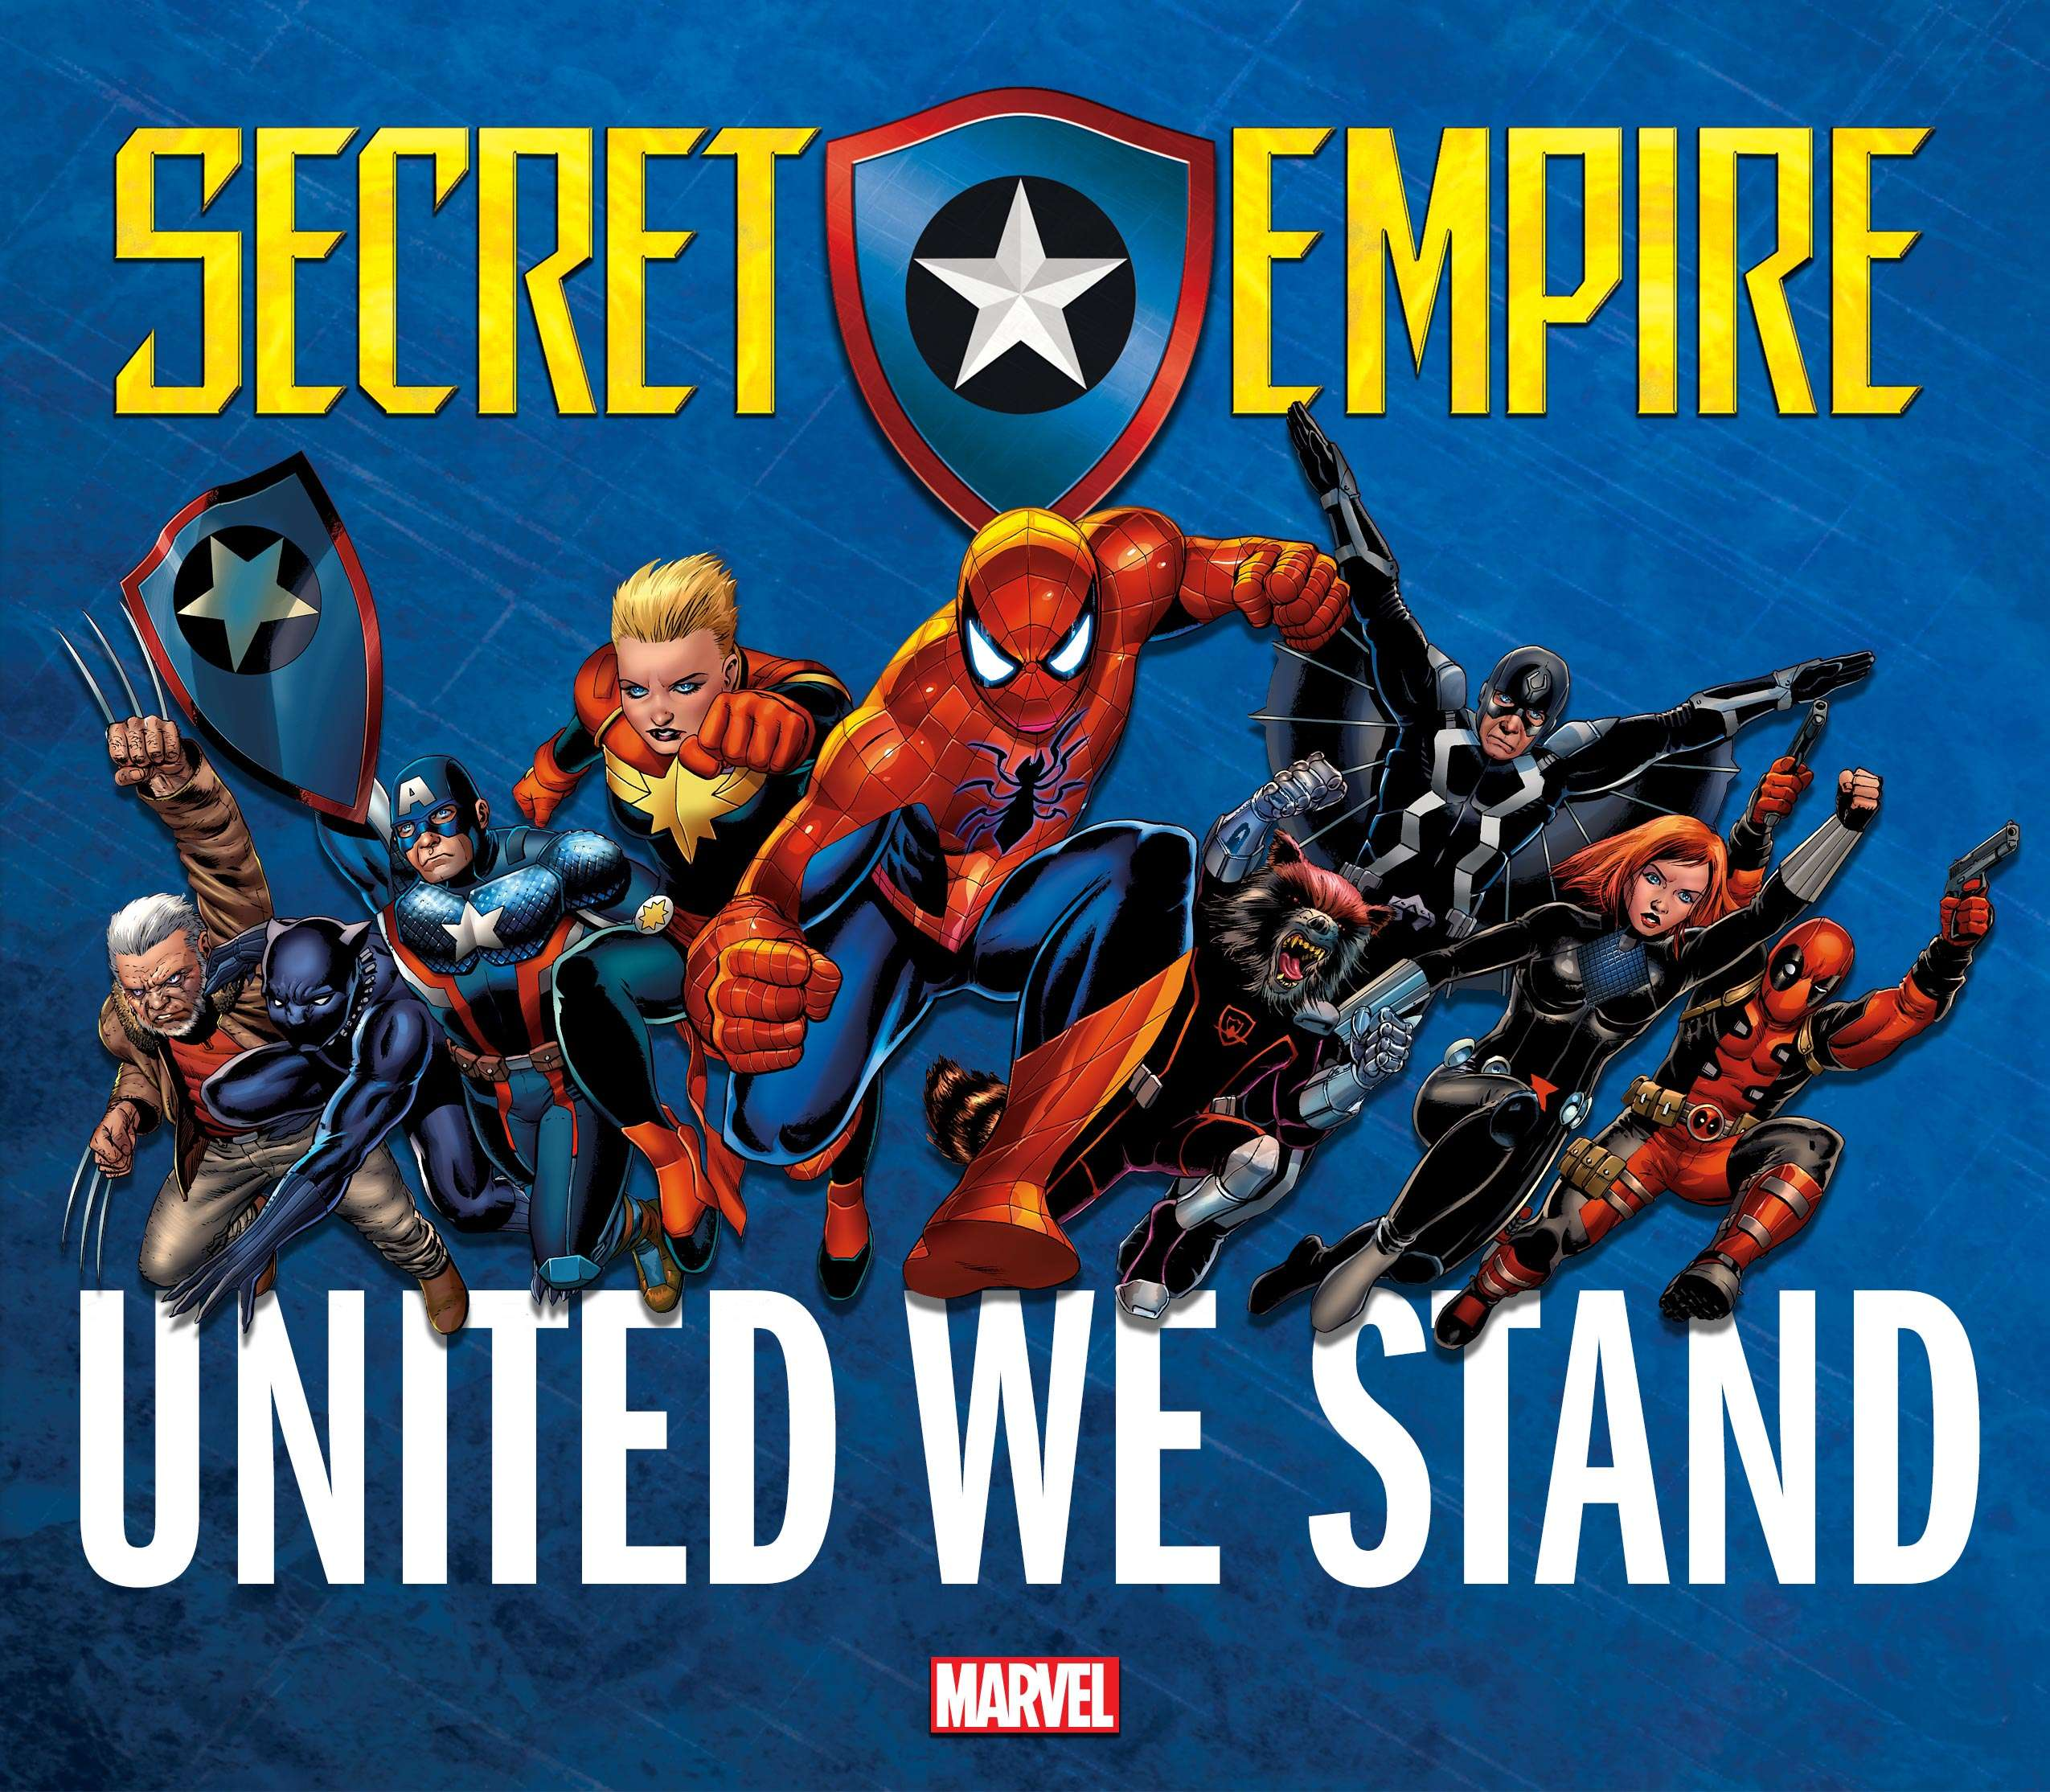 secret empire united we stand